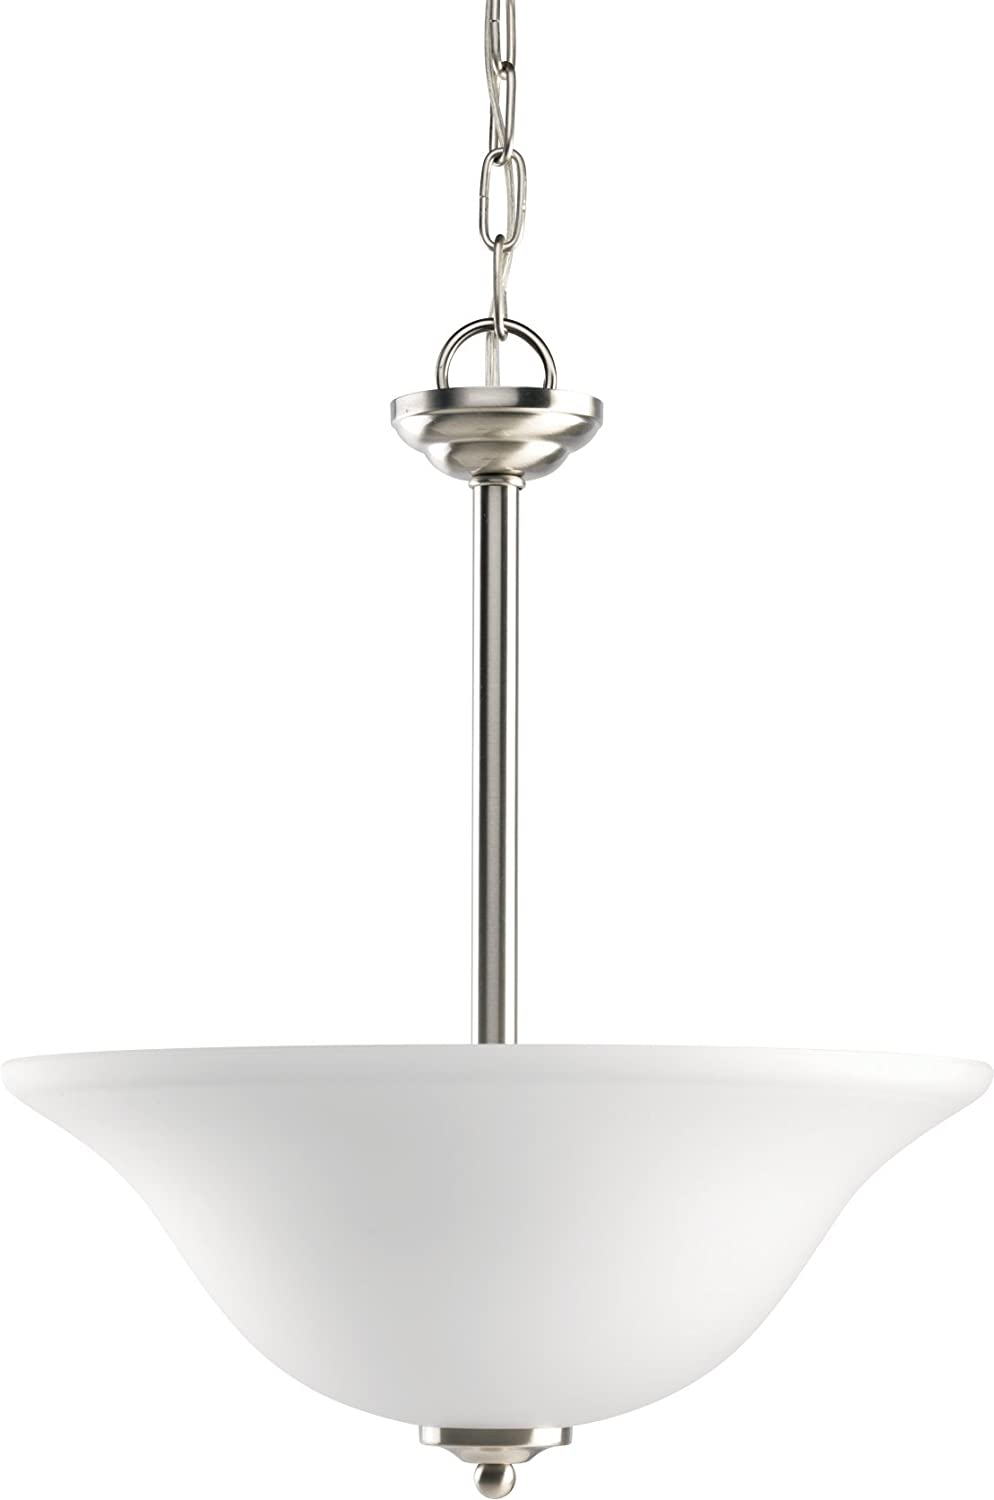 HomeStyle HS47007-09 Medium Chain Hung Foyer-CFL (w bulb) in Brushed Nickel